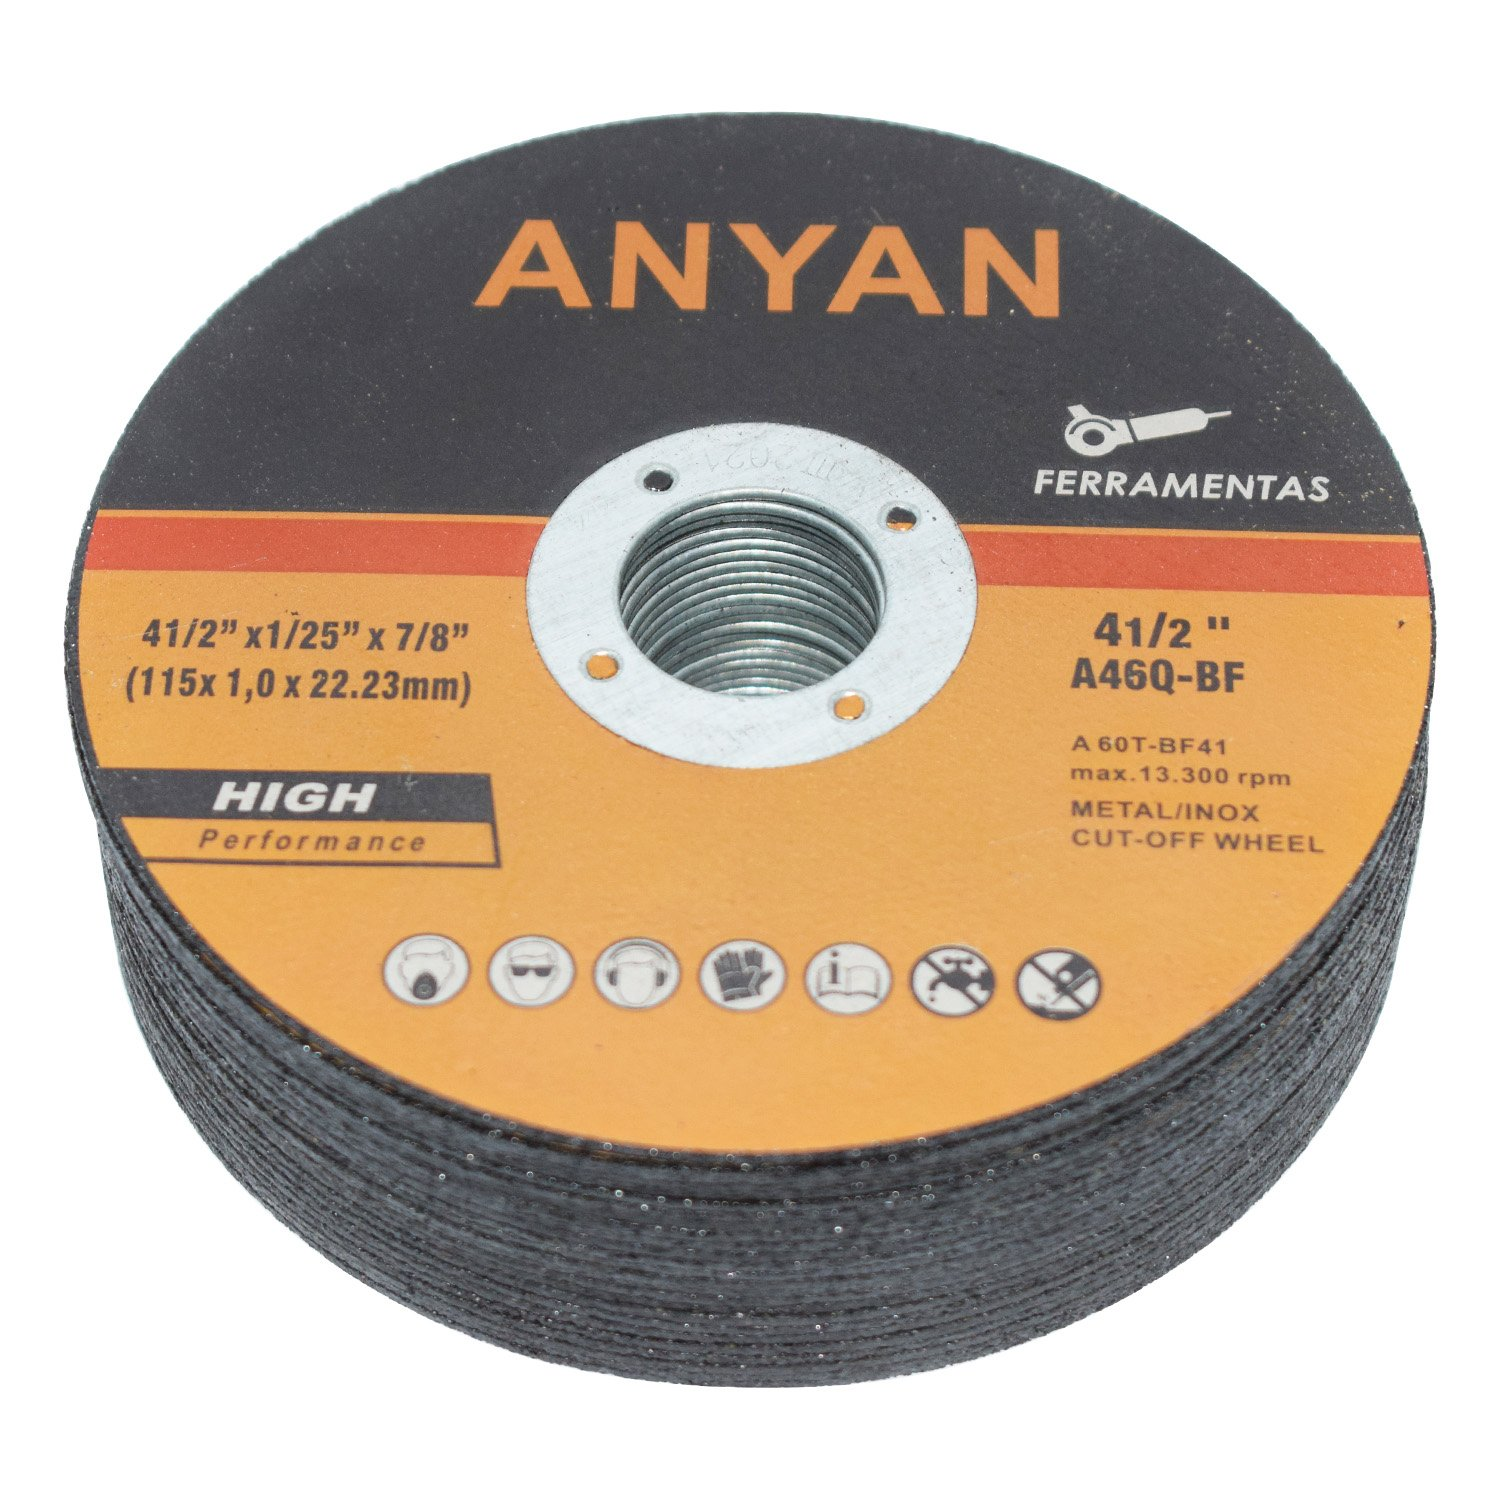 Anyan Ultra-Thin Cut-Off Wheel | Highly-Efficient 4.5-Inch Cutting Disc for Metal & Stainless Steel | Ultra-Thin & Long-Lasting | Minimal Vibration & Heat Buildup | Pack of 25 Cutting Discs by Anyan